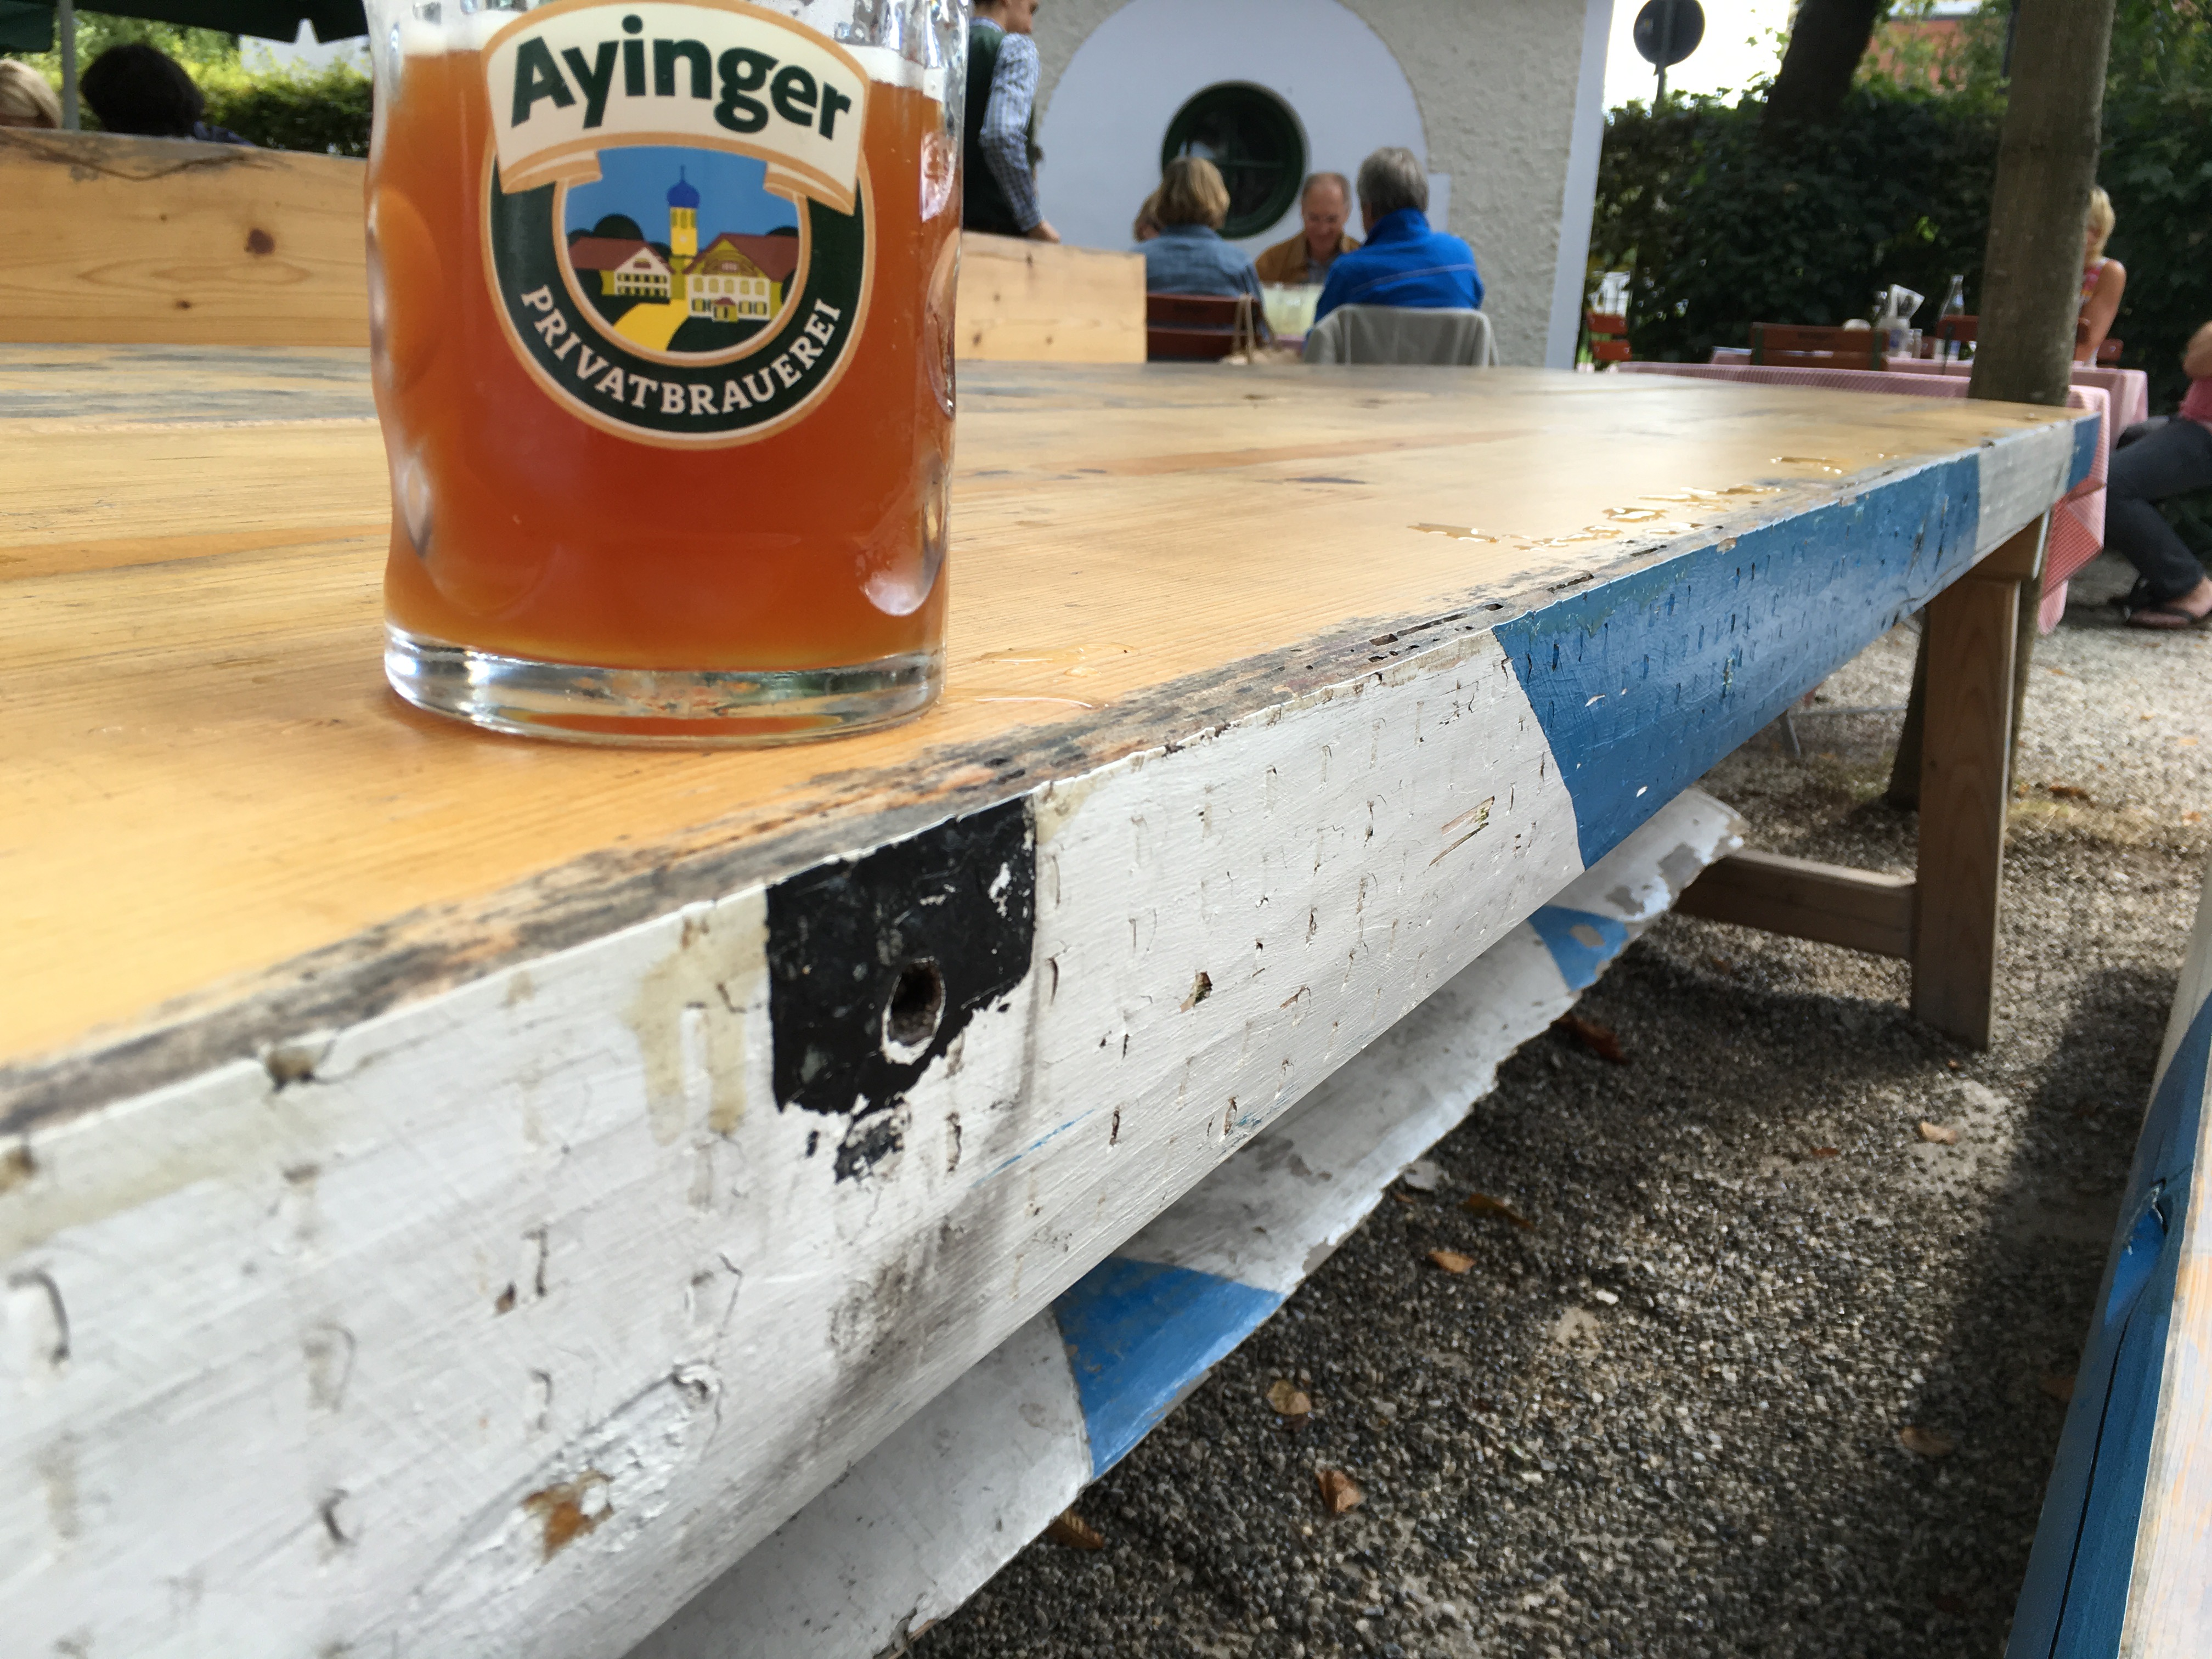 The table I sat at was made from the former maypole in front of Brauereigasthof Hotel Aying while at Ayinger Braustuberl.